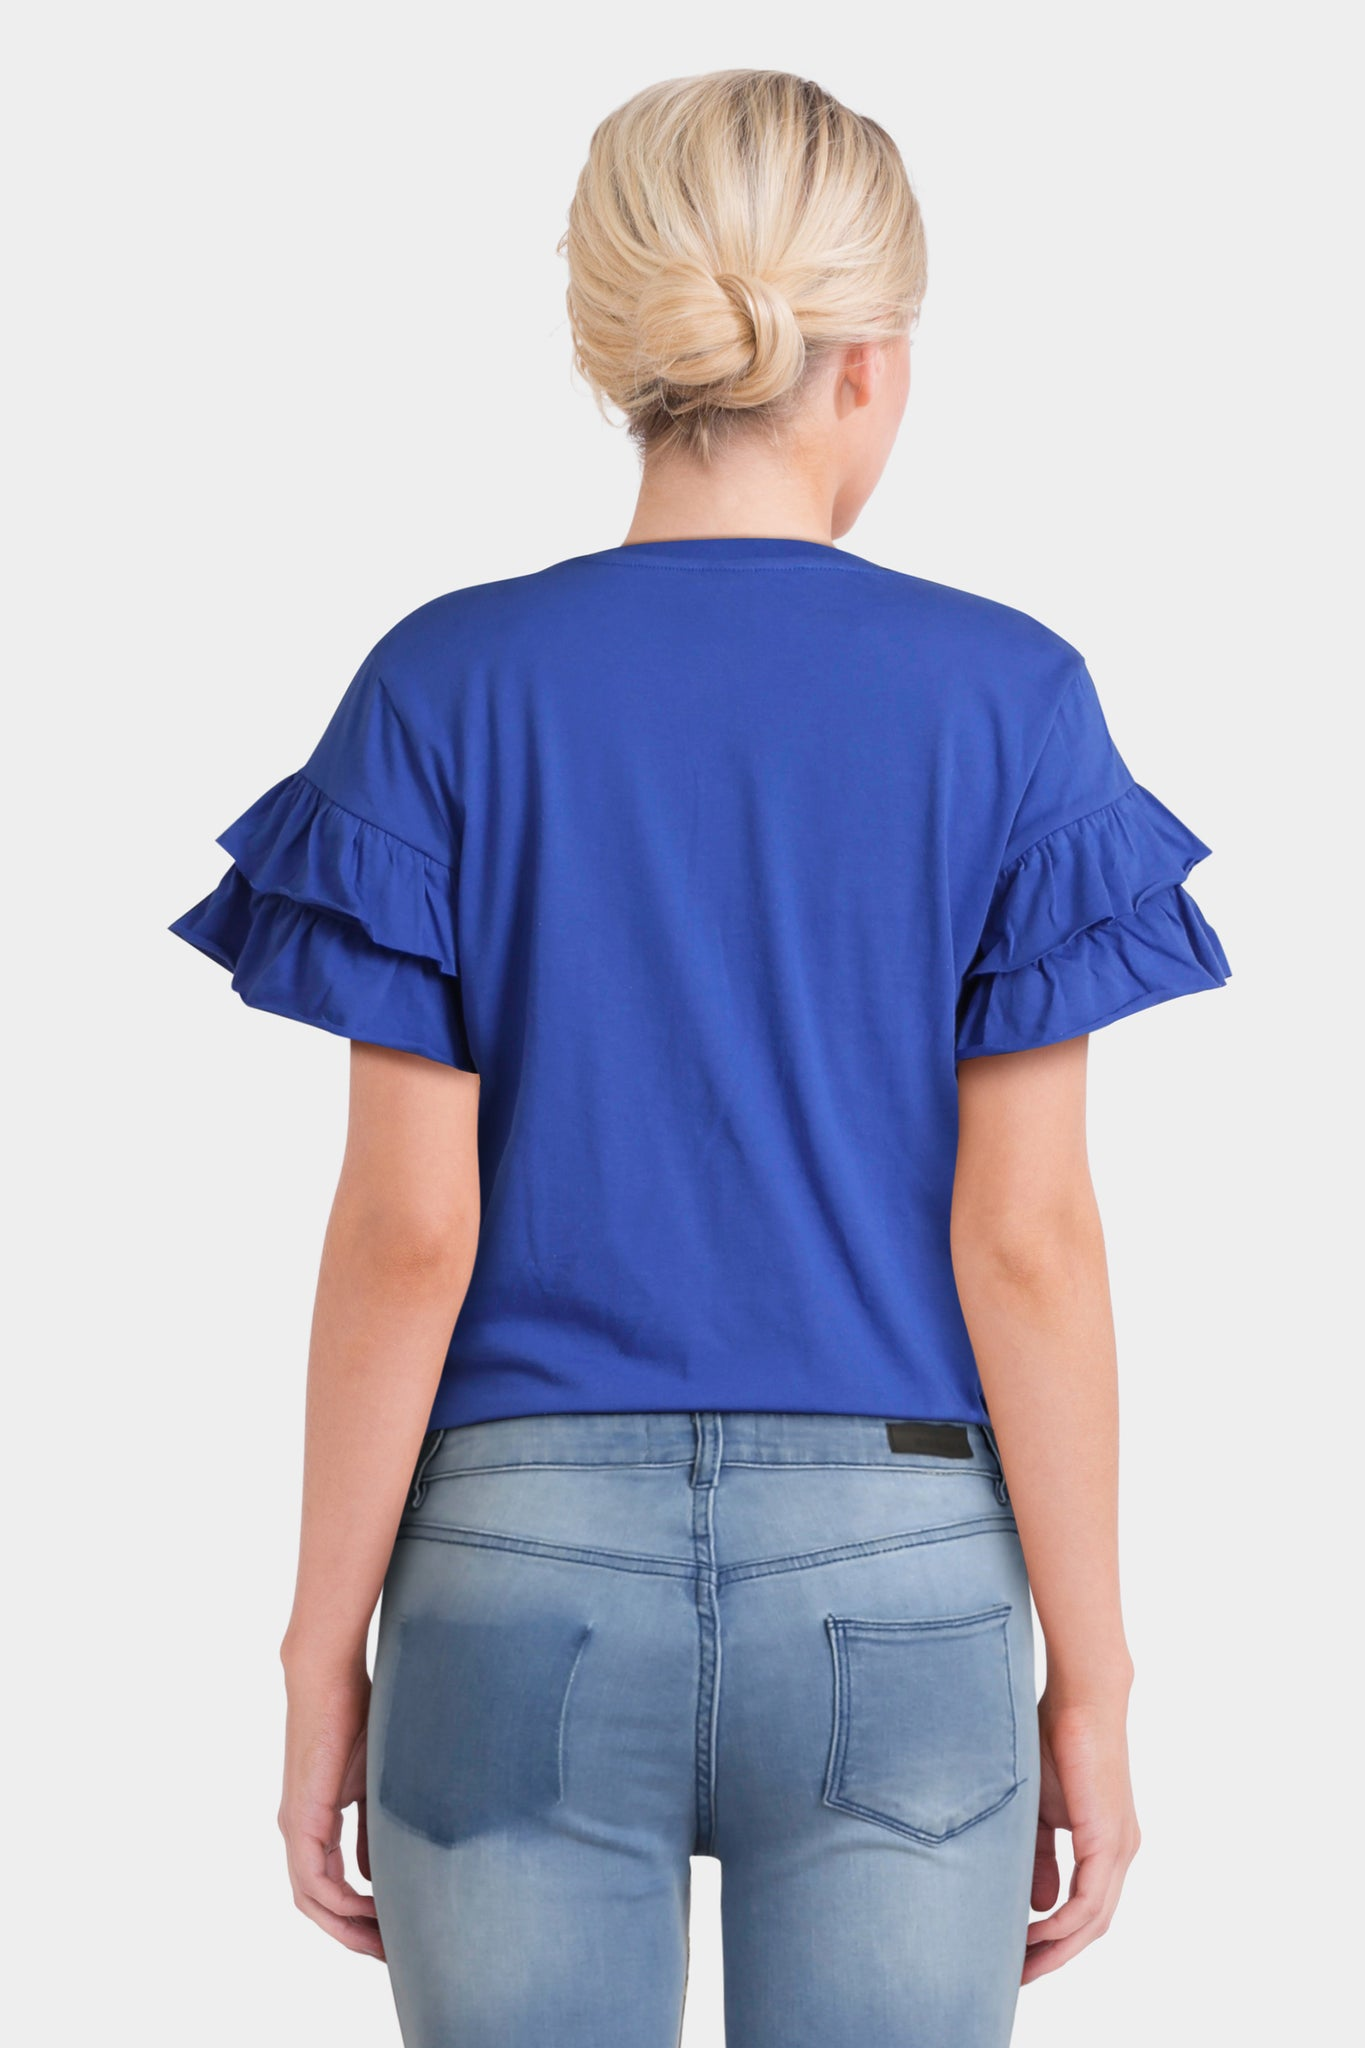 Asos T-Shirt With Ruffle Sleeve And Mix And Match Motif